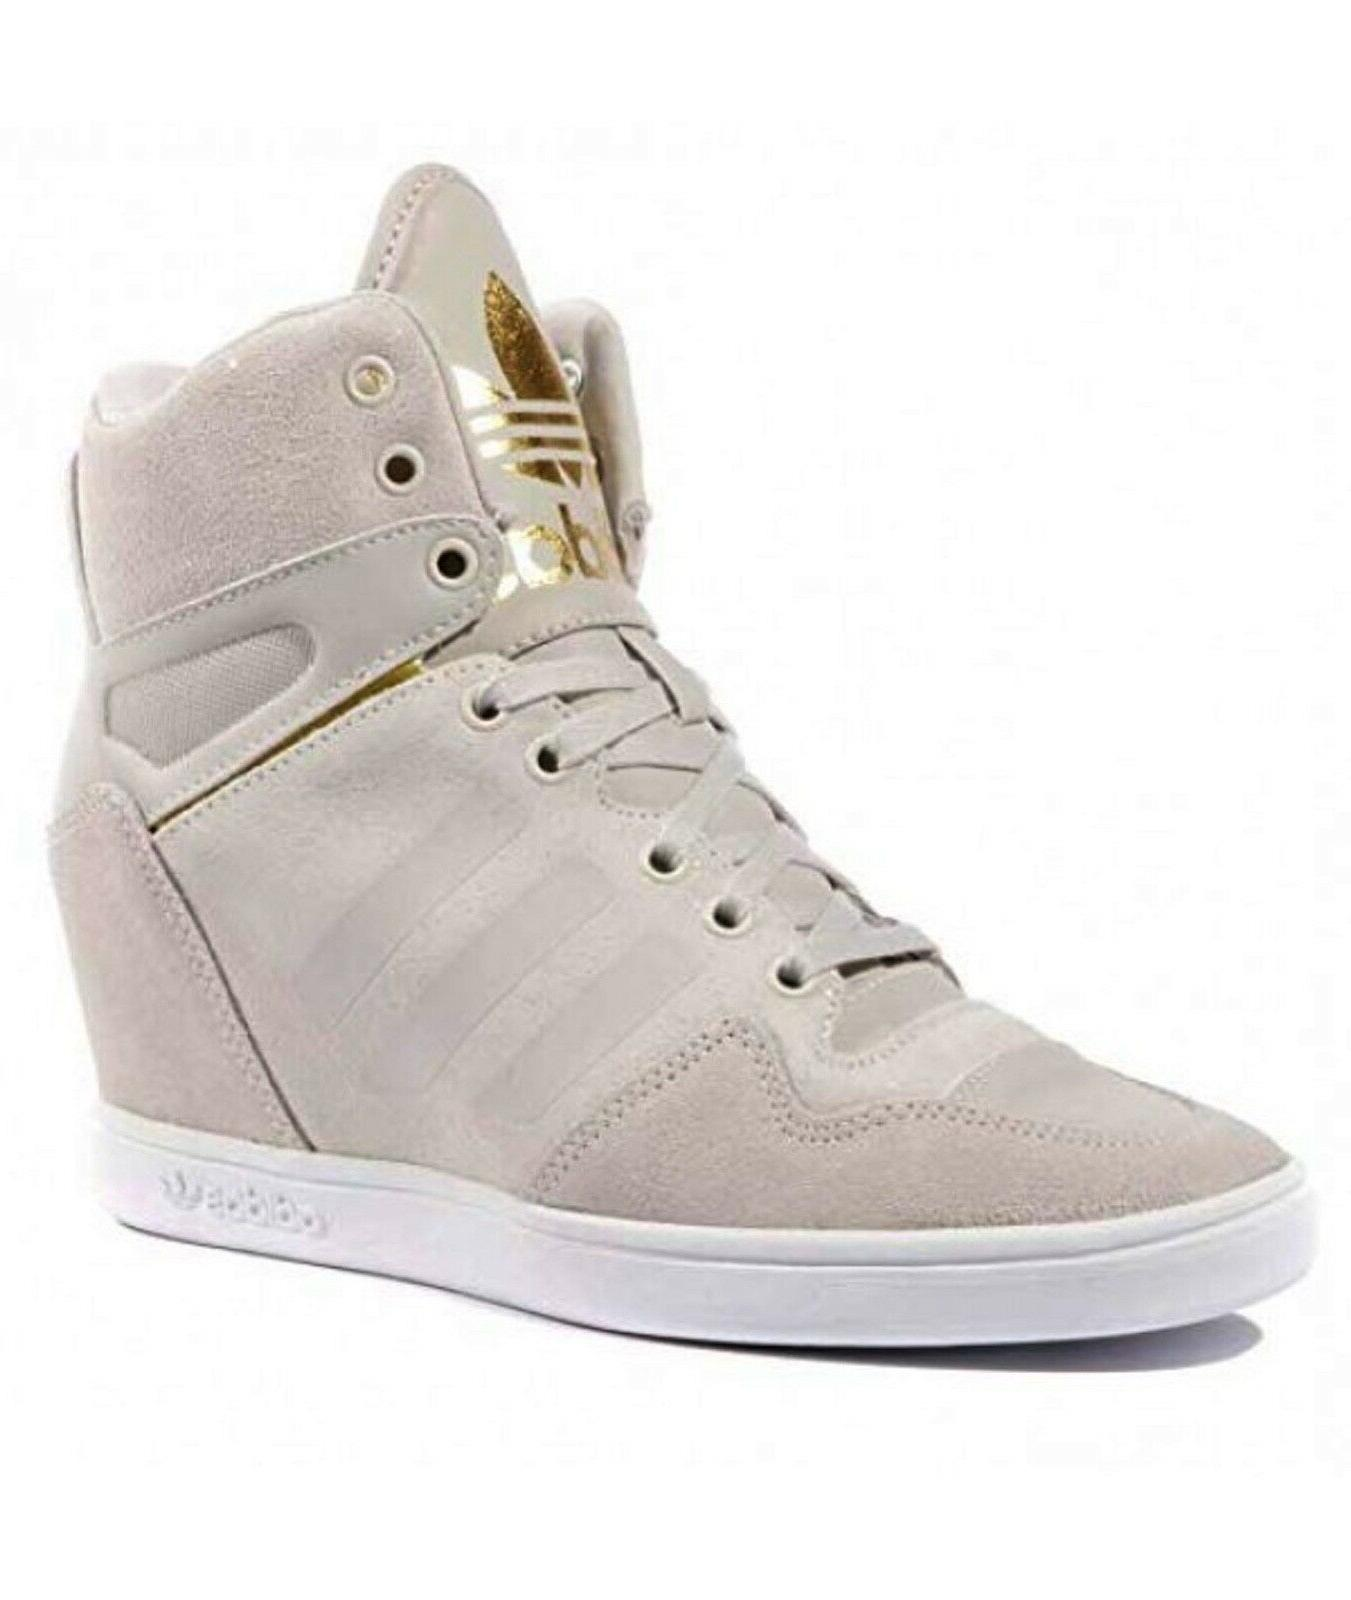 Adidas ATTITUDE UP S75018 MID TOP SNEAKERS